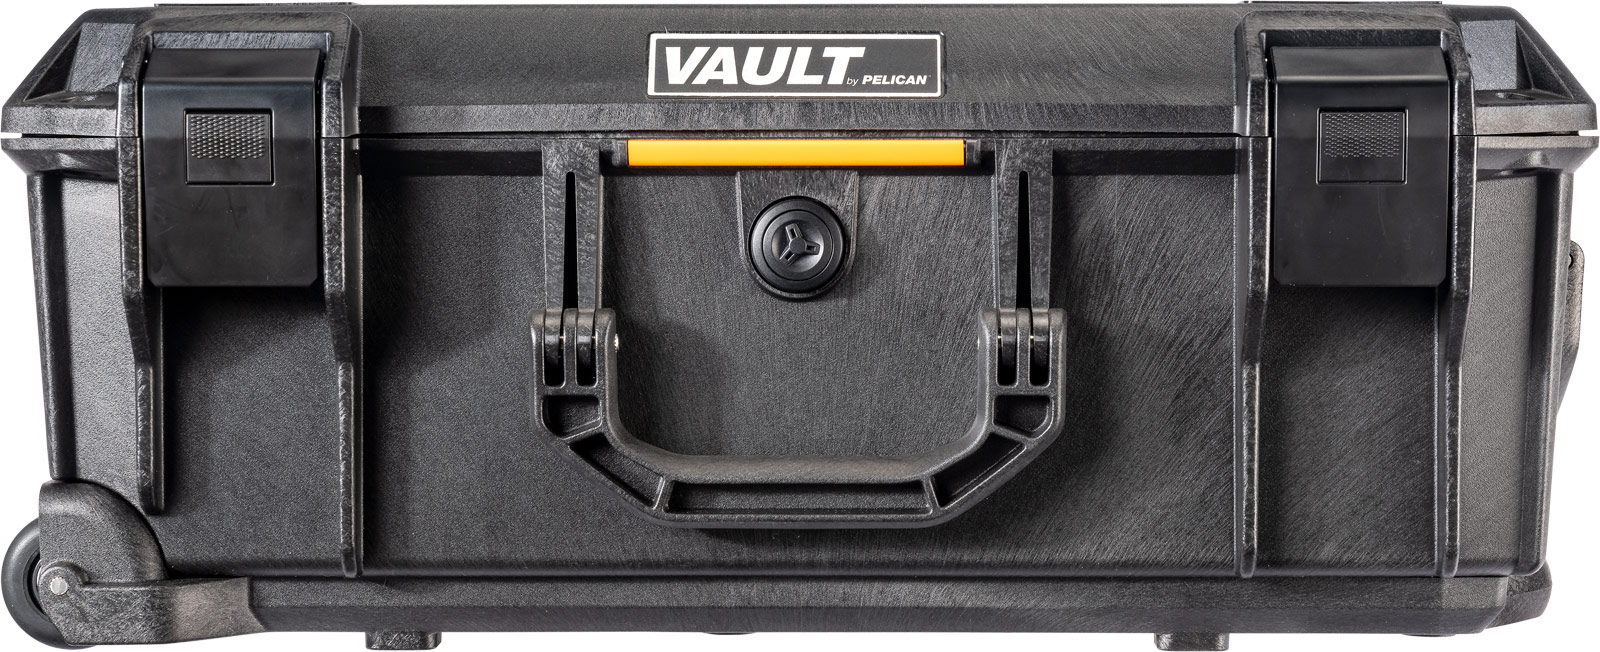 pelican vault v525 black hard case